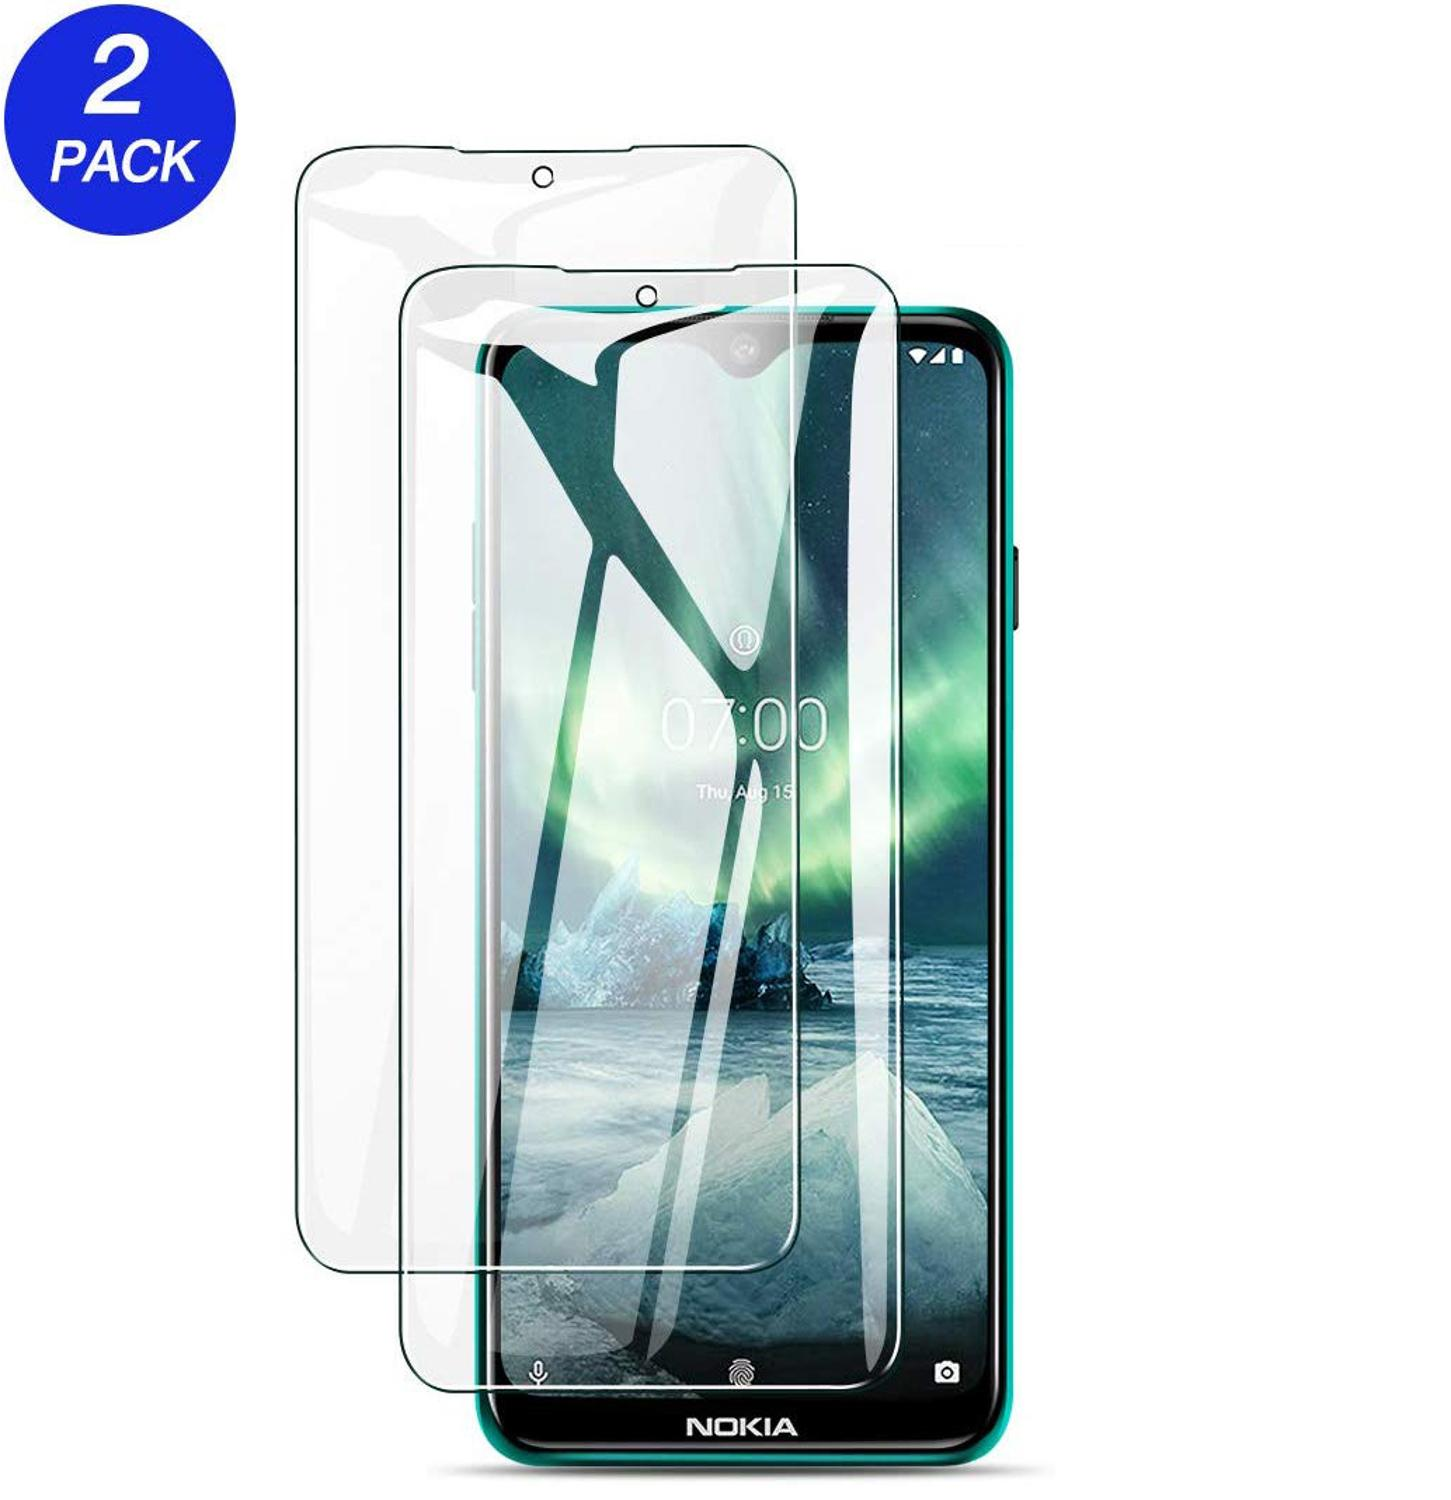 2PCS/lot Tempered Glass For <font><b>Nokia</b></font> <font><b>7.2</b></font> <font><b>Screen</b></font> <font><b>Protector</b></font> Potective Film For <font><b>Nokia</b></font> <font><b>7.2</b></font> TA-1196 TA-1181 TA-1178 TA-1193 <font><b>Nokia</b></font> 6.2 image